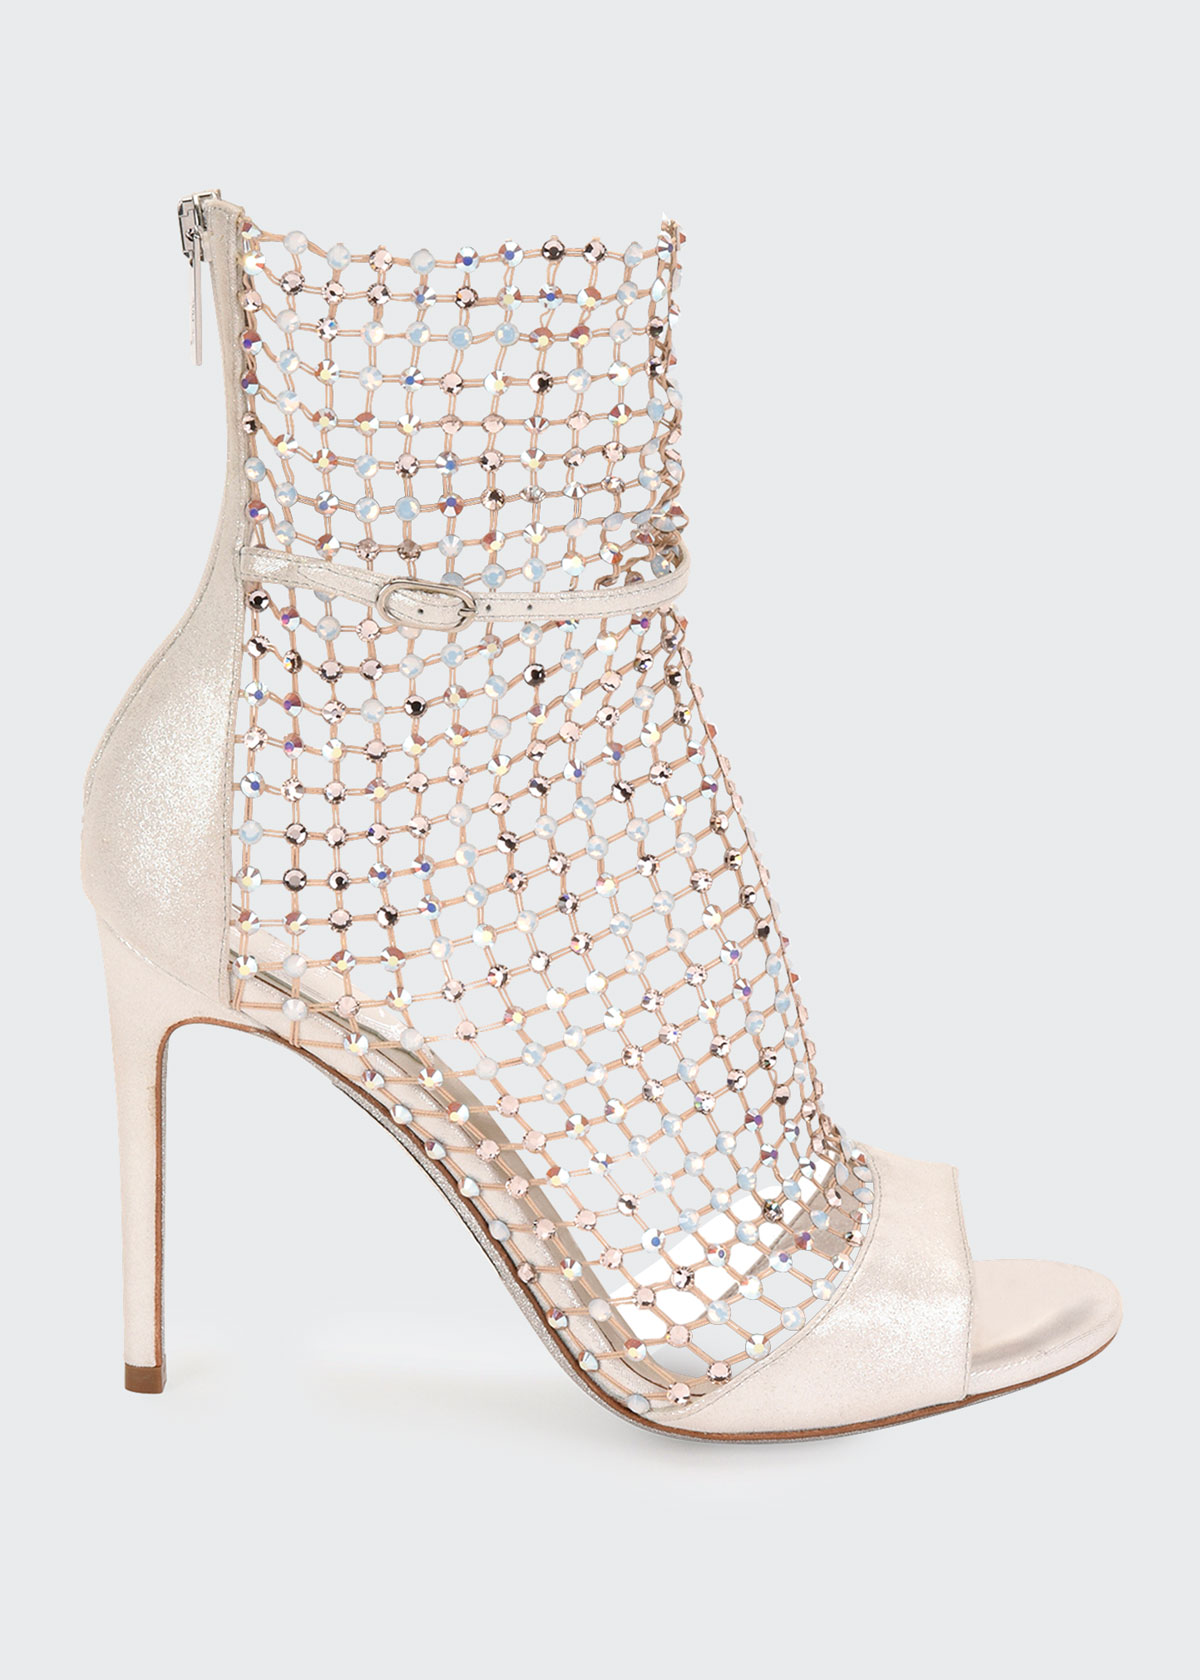 René Caovilla GALAXIA MESH AND METALLIC NET SANDAL-ILLUSION BOOTIES